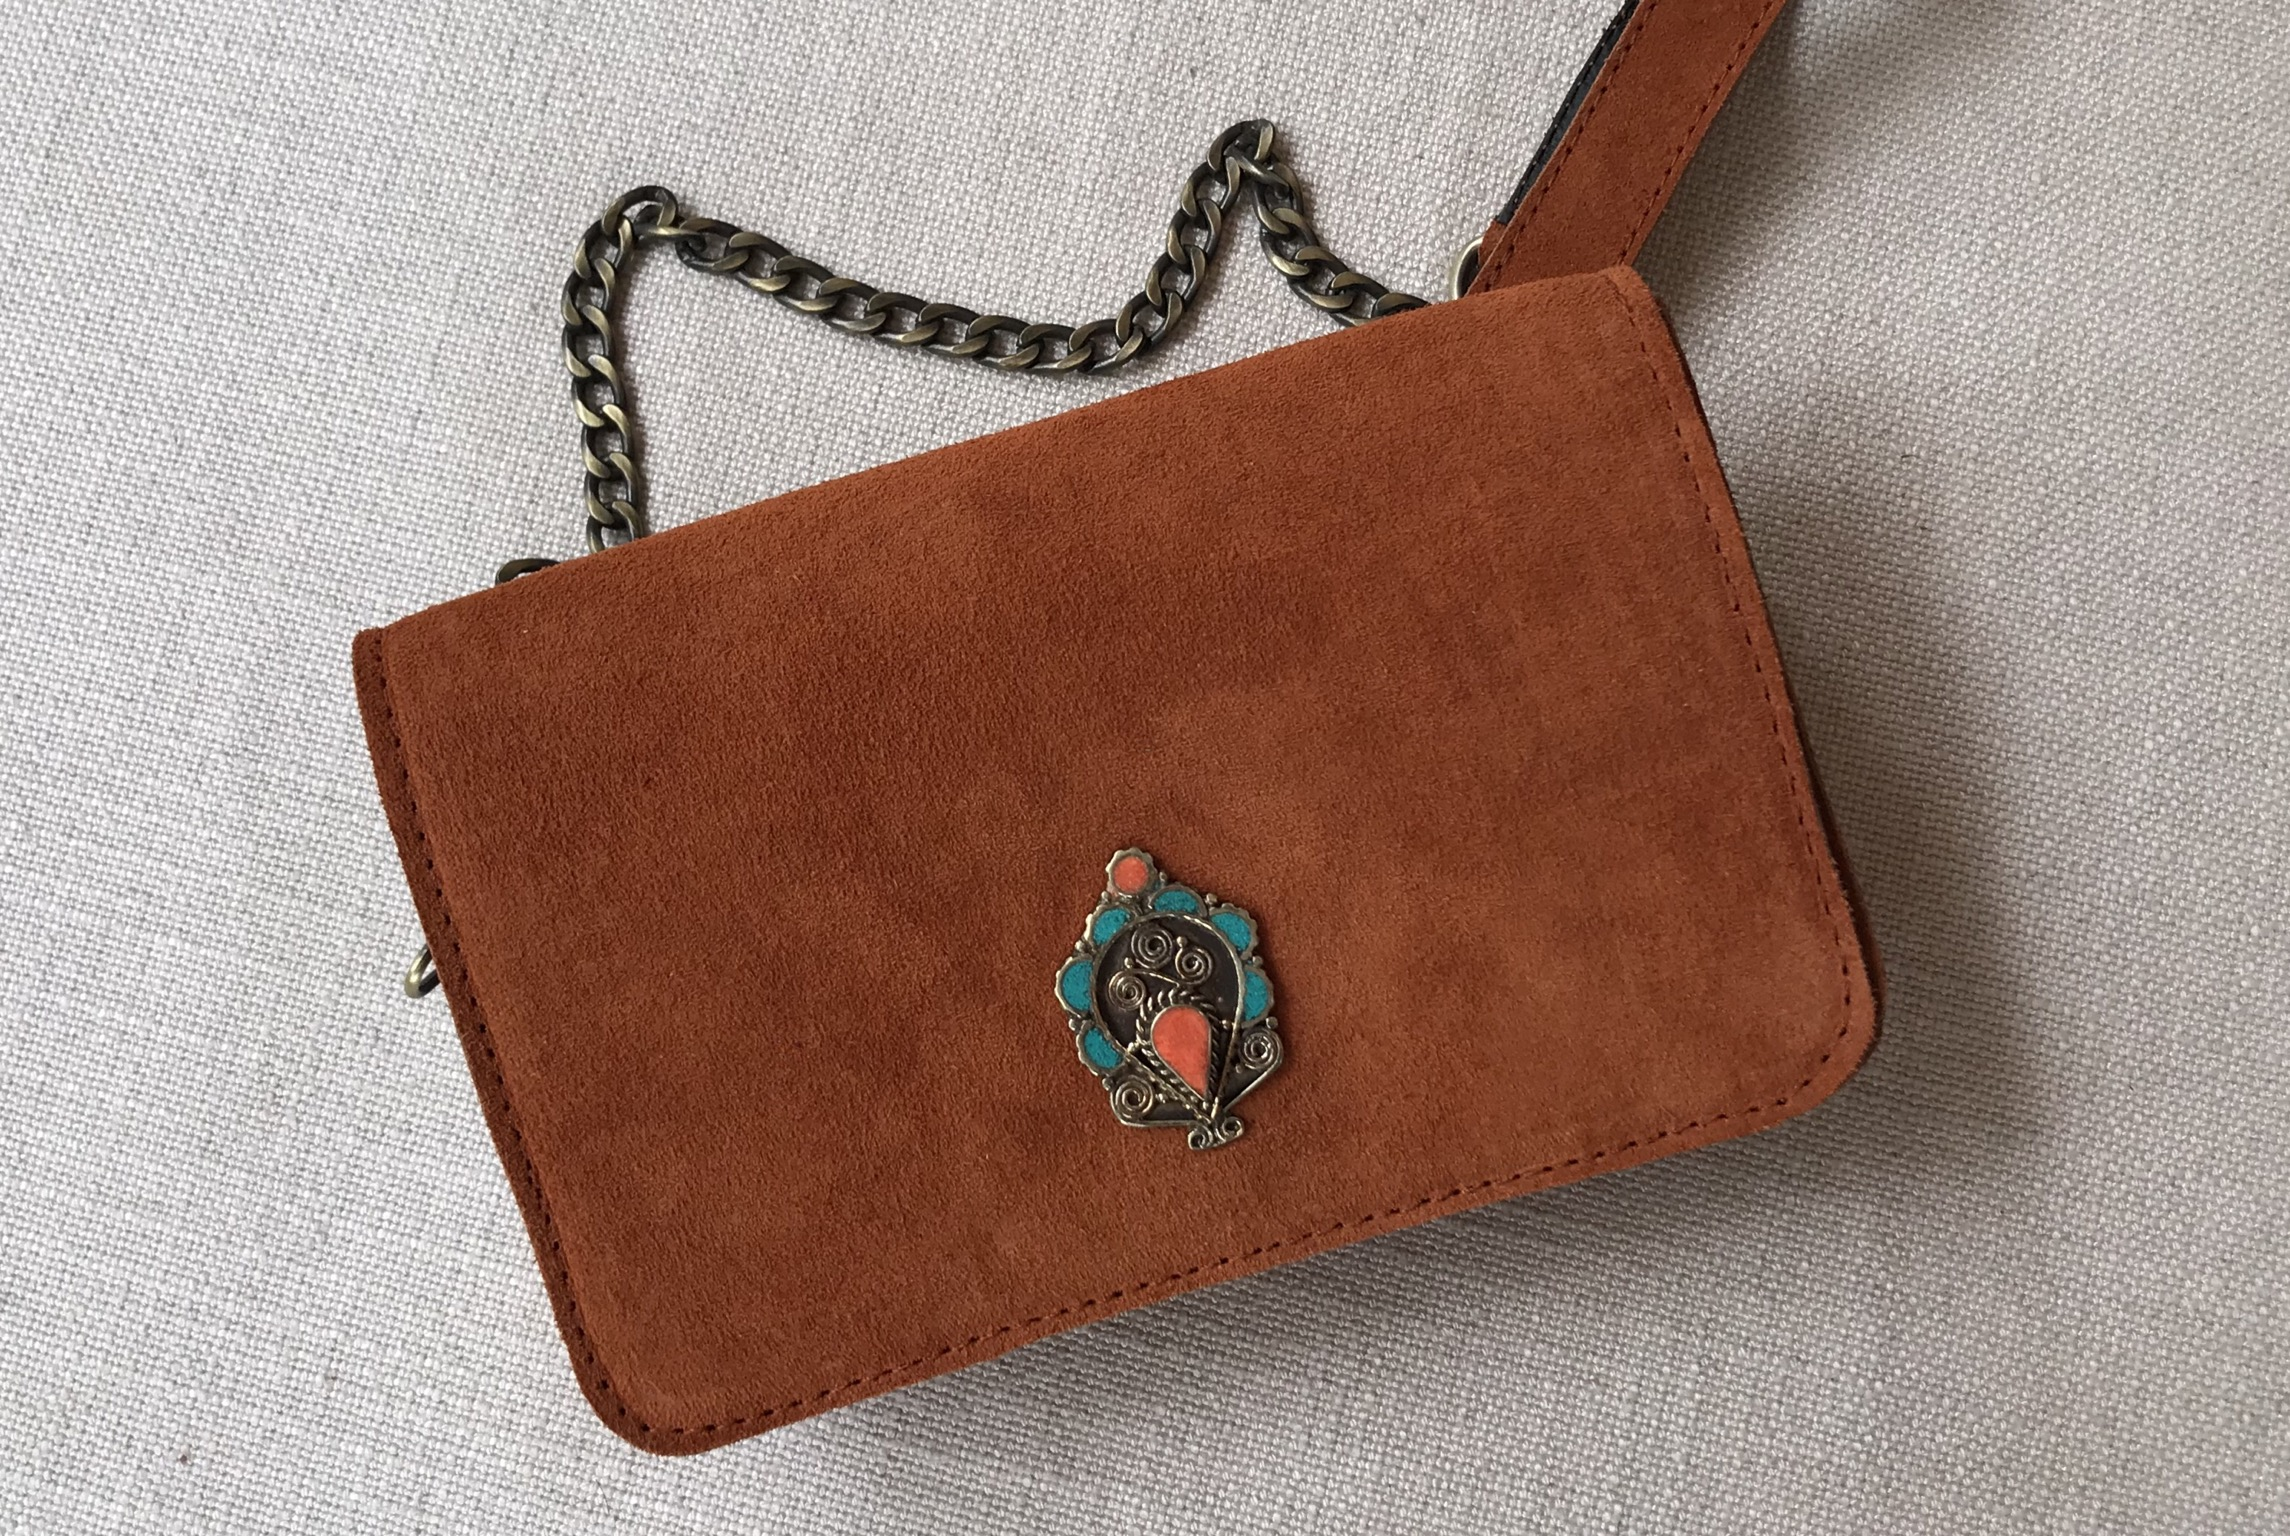 Bag mini suede leather orange with jewelry